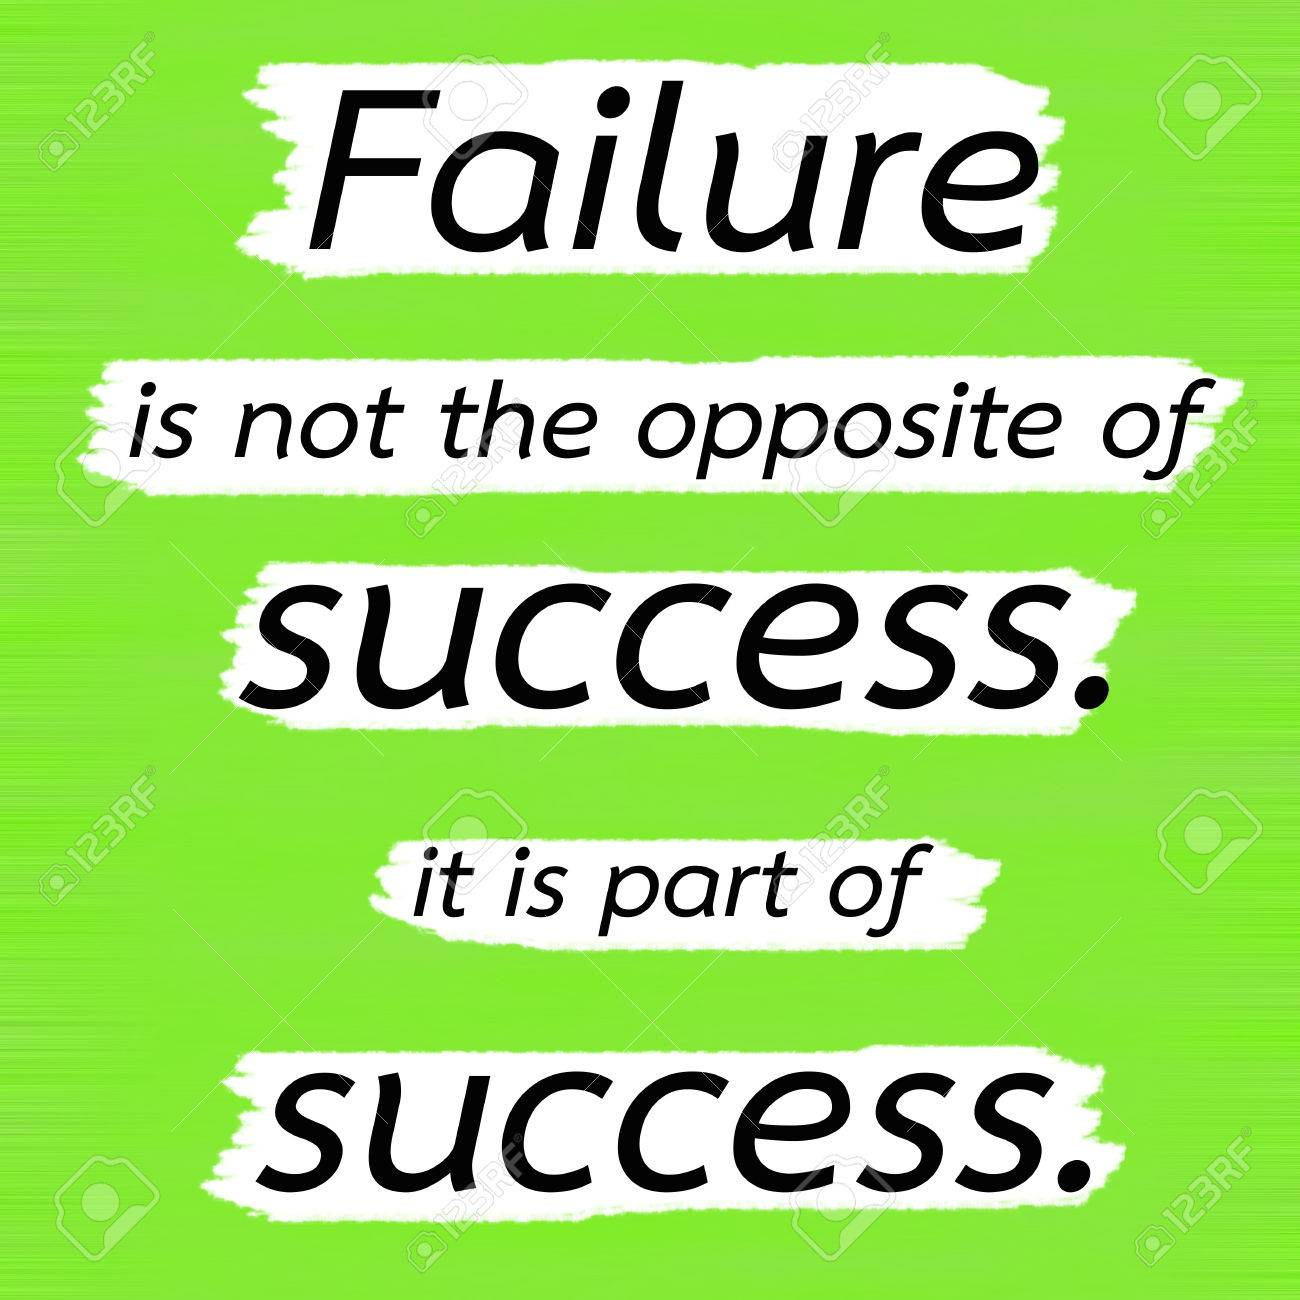 7363e57d6345 Failure is not the opposite of success. it is part of success.Creative  Inspiring